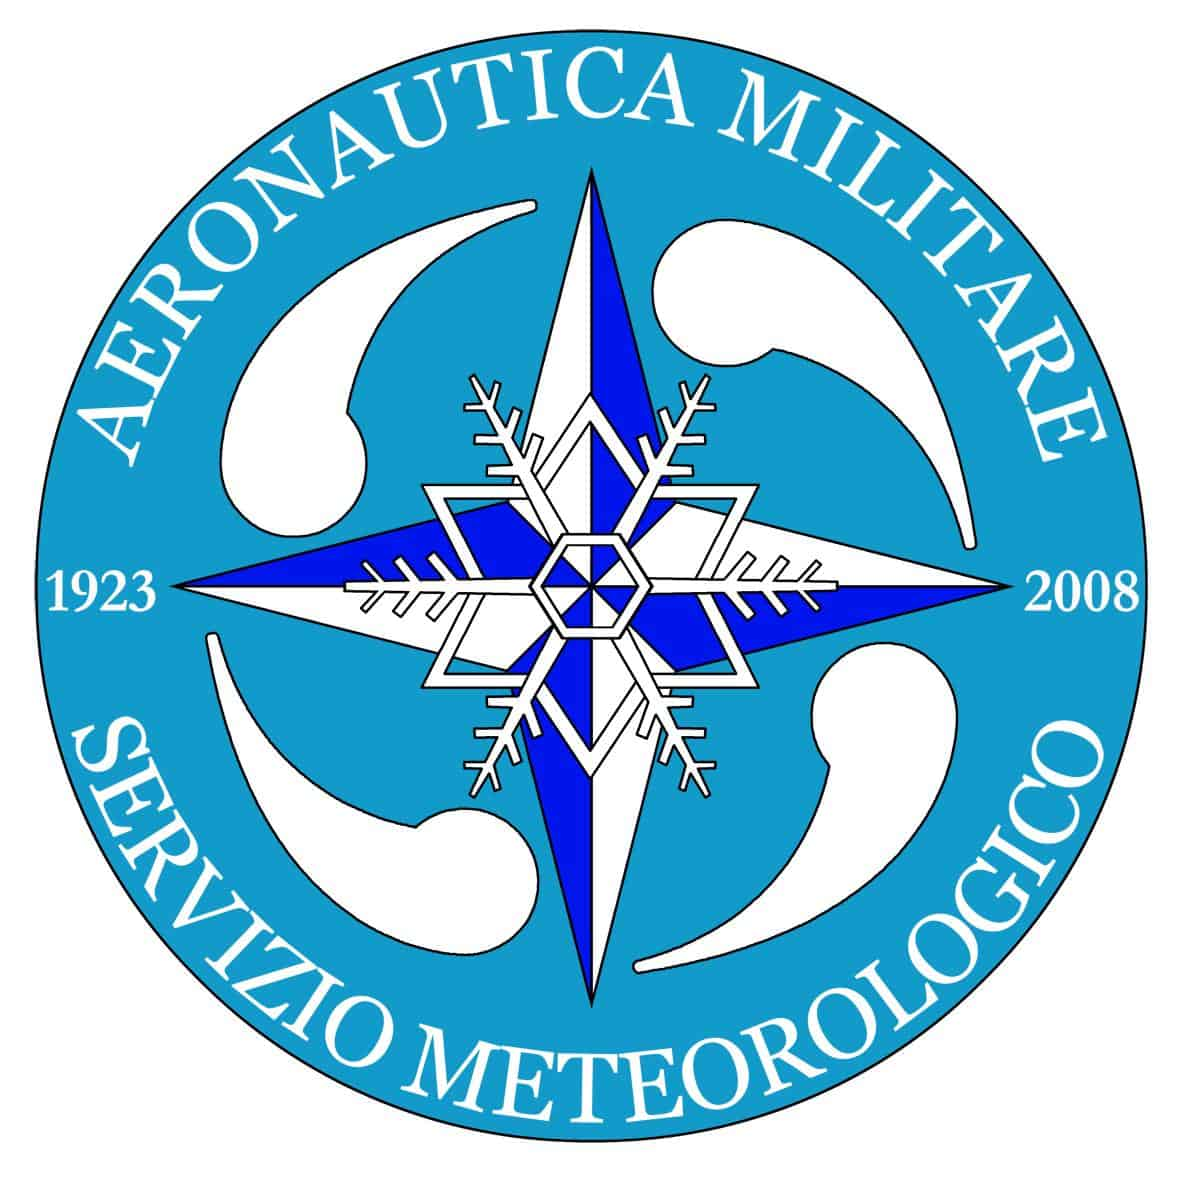 Meteorological Service of the Italian Air Force - Vela Dream